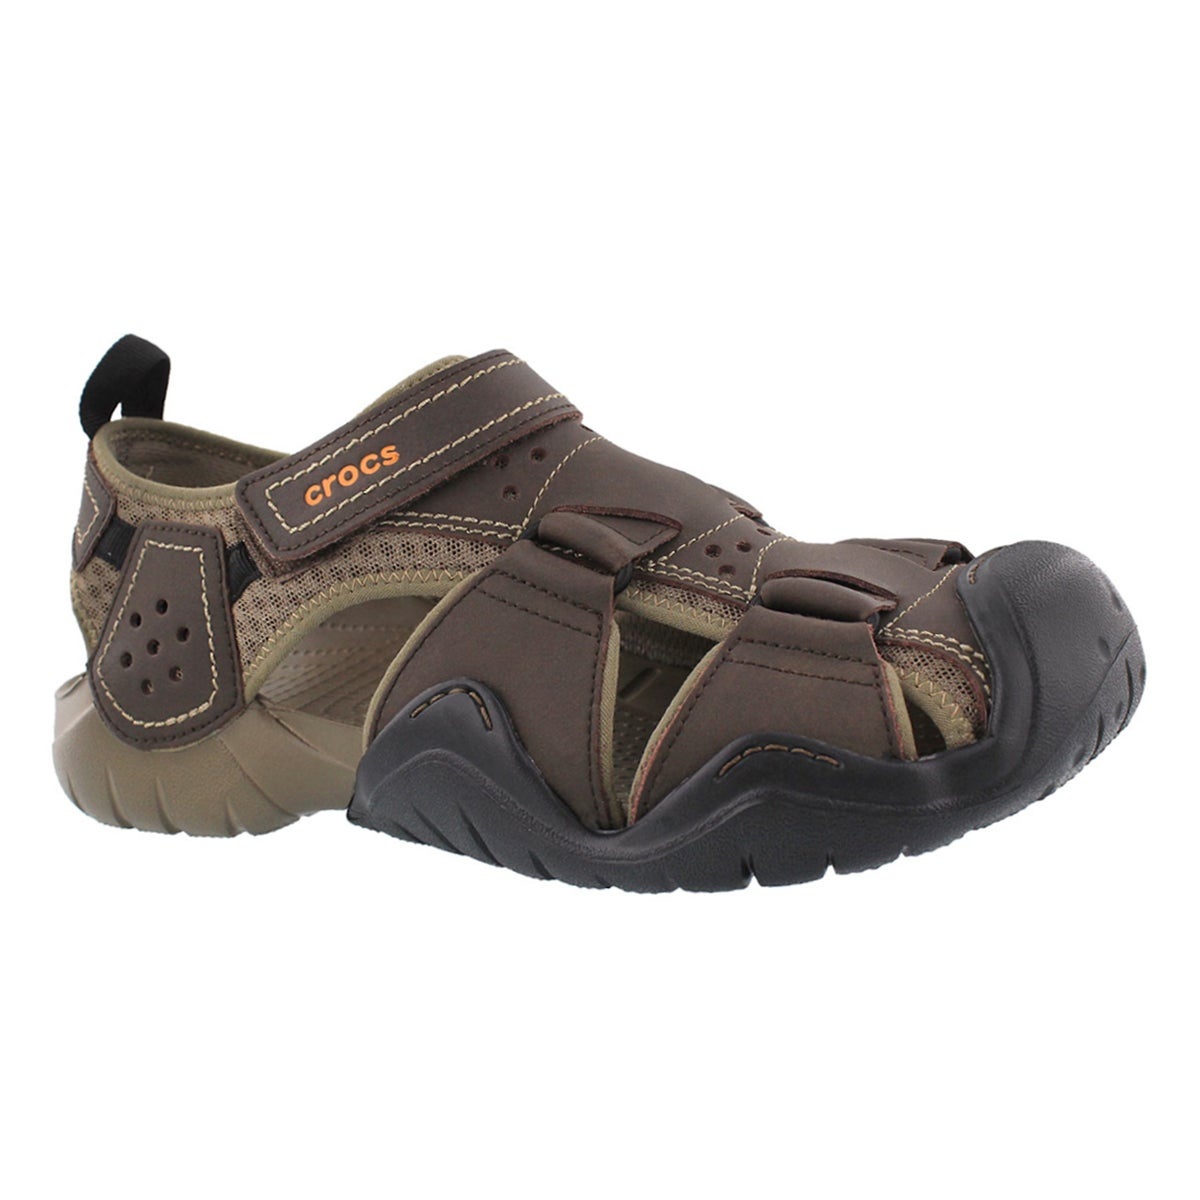 Men's SWIFTWATER LEATHER esp fisherman sandals